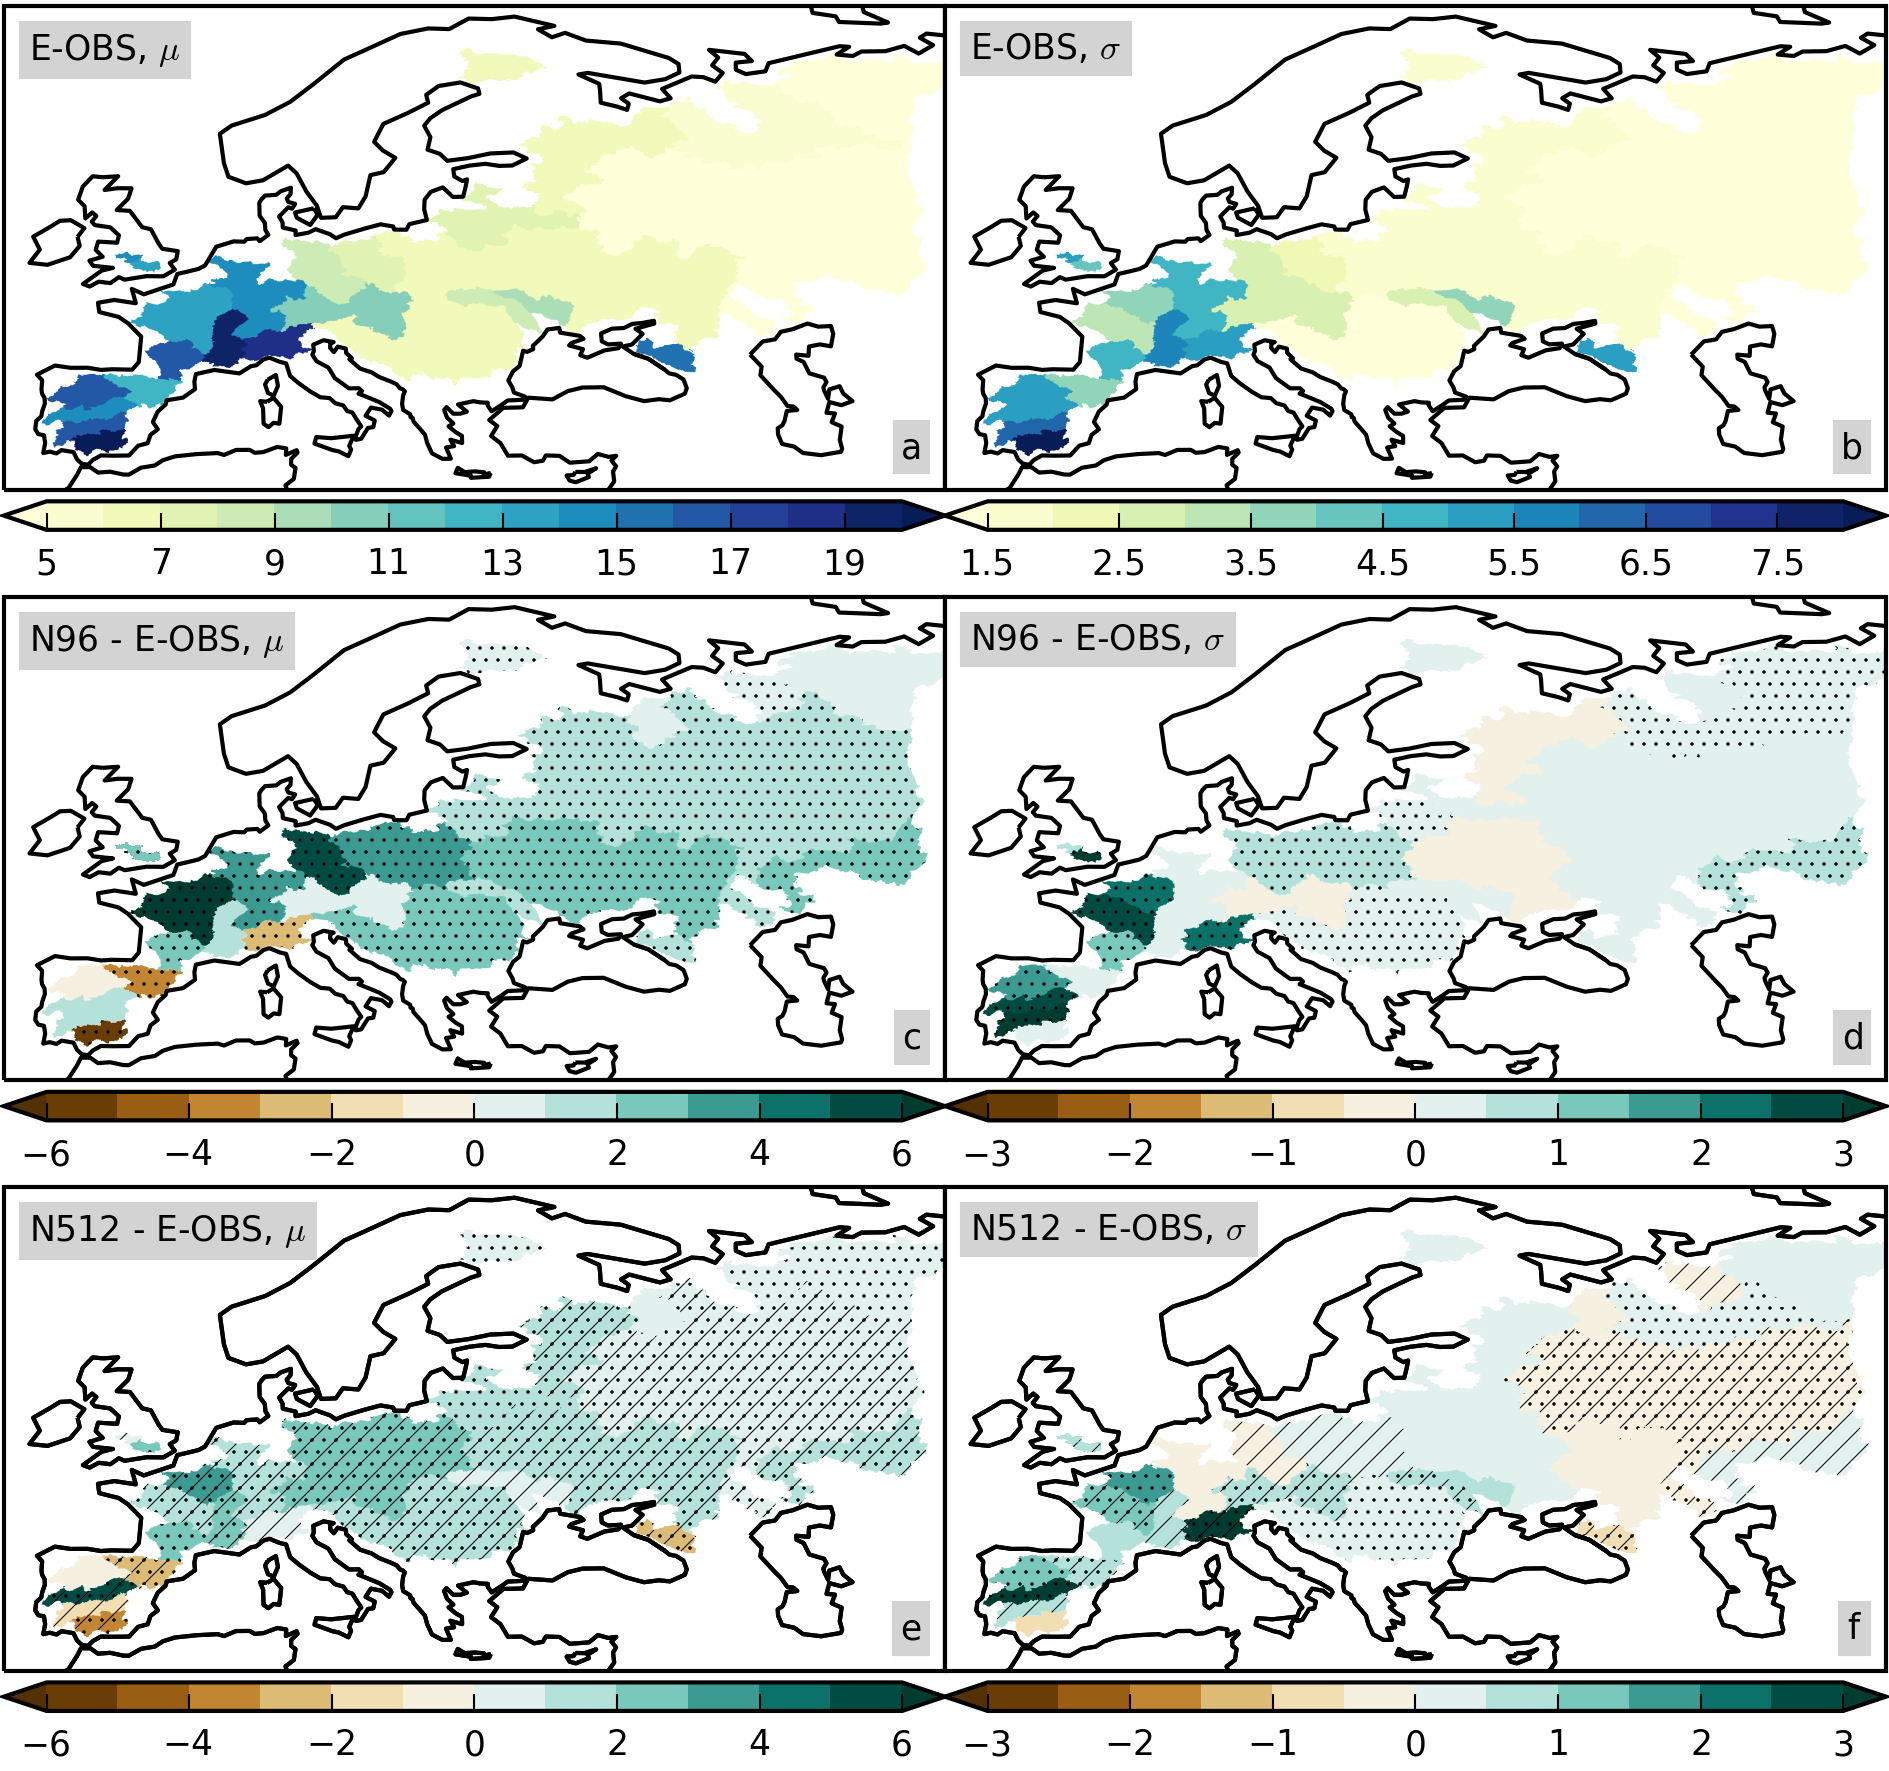 Increasing model resolution allows a better representation of statistical parameters that describe extreme winter rainfall events over large European river basins. At 25-km resloution, the typical magnitude (left column) and year-to-year variability (middle column) in extremes are better captured than at 130-km resolution.